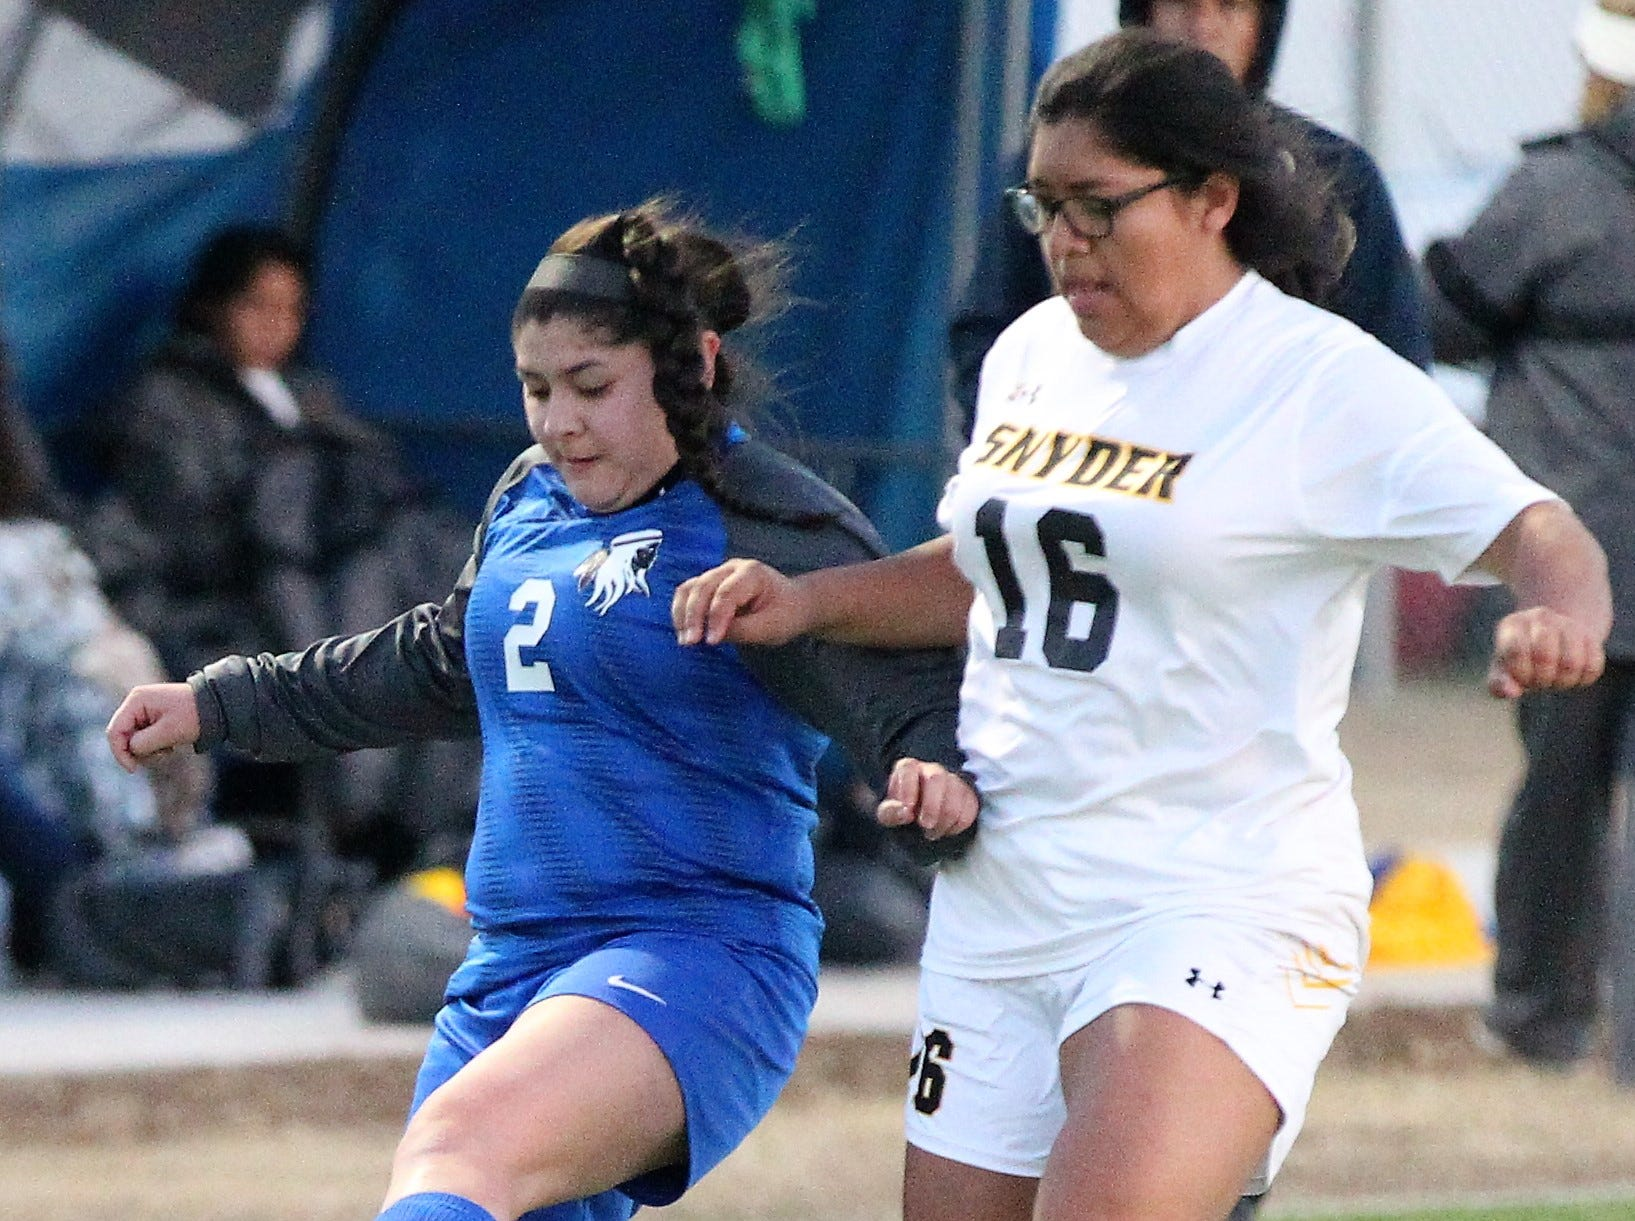 Lake View's Abigail Borrego (left) keeps possession in a District 4-4A soccer match against Snyder at Old Bobcat Stadium on Tuesday, March 5, 2019.